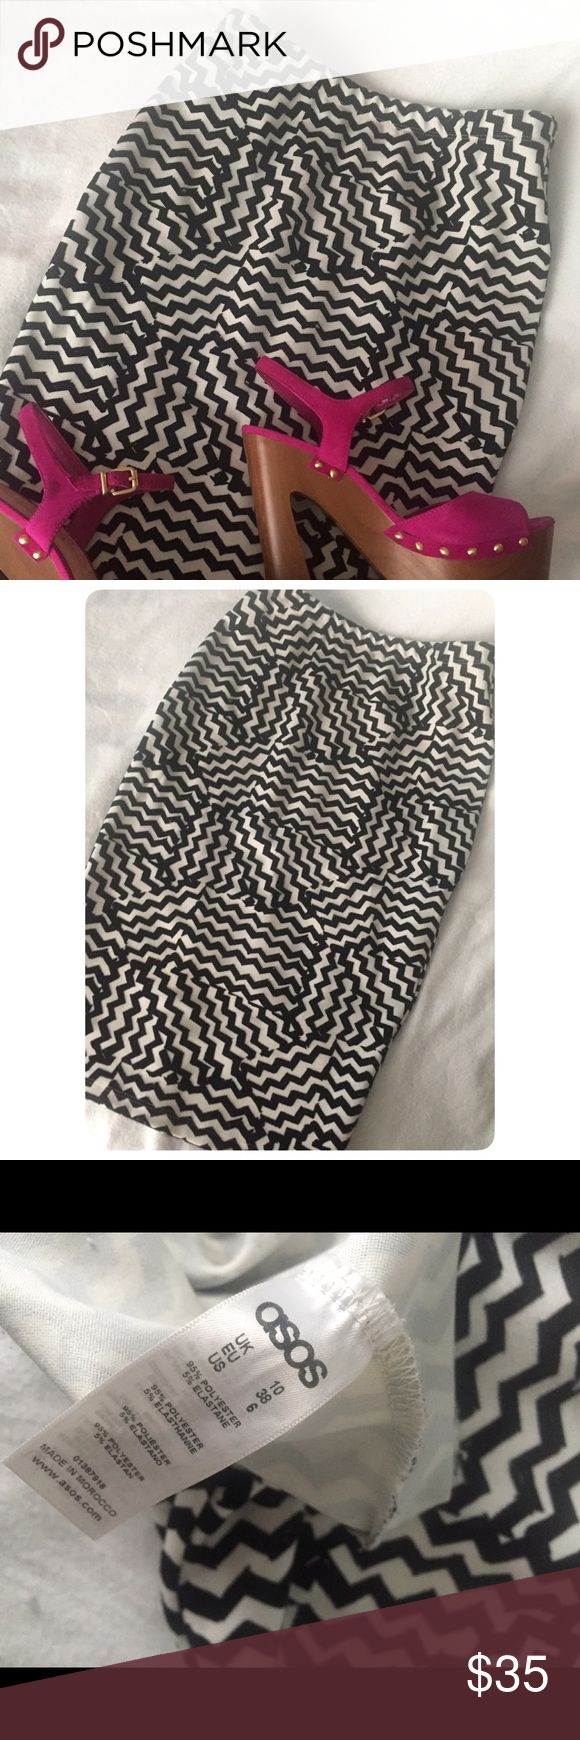 ASOS Skirt Really cute form fitting skirt. Black and white Aztec design. Made of 95% polyester and 5% elastane. Has a little stretch. The black lines have a velvet type of feel. Worn once and in great condition. Please feel free to ask questions. Bundle with other items to receive 15% discount! ASOS Skirts Midi